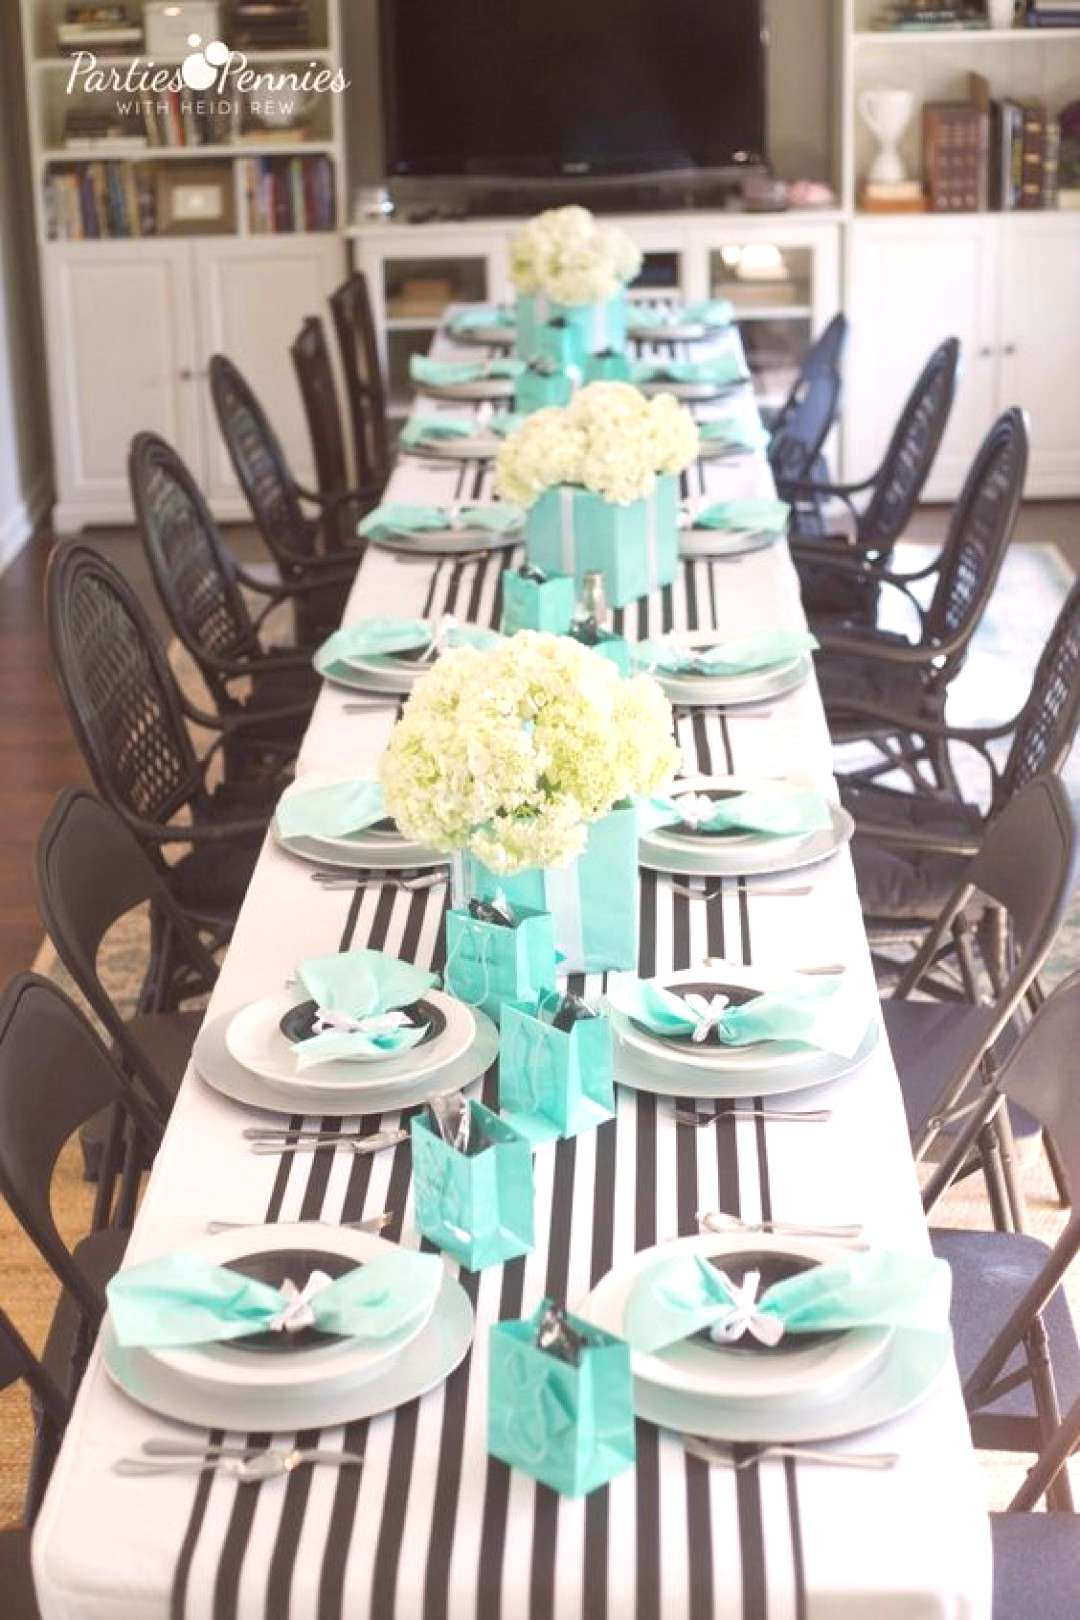 Breakfast at Tiffanys Baby Shower - Parties for Pennies#baby